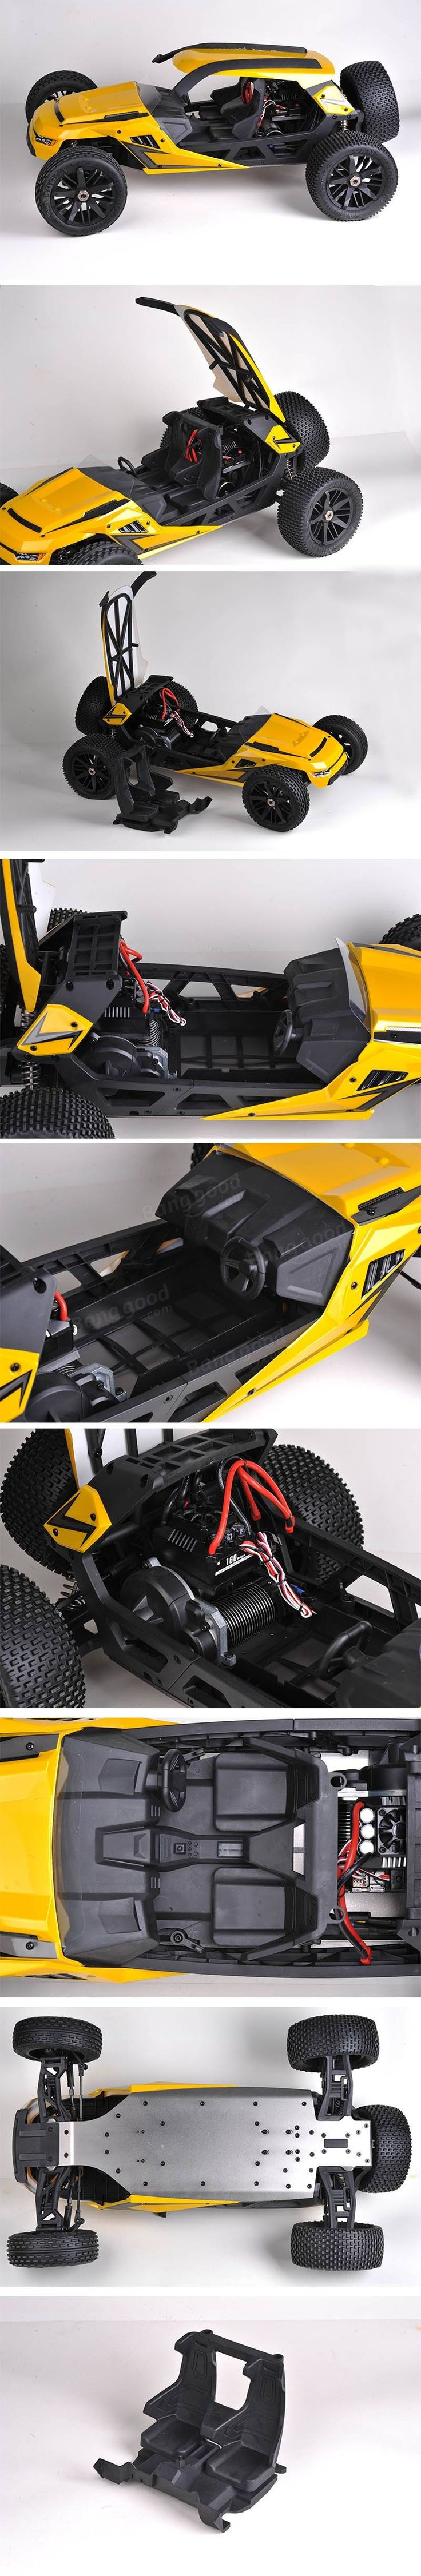 HBX T6 1/6 100+km/h RWD Proportional Brushless RC Desert Buggy RC Racing Car